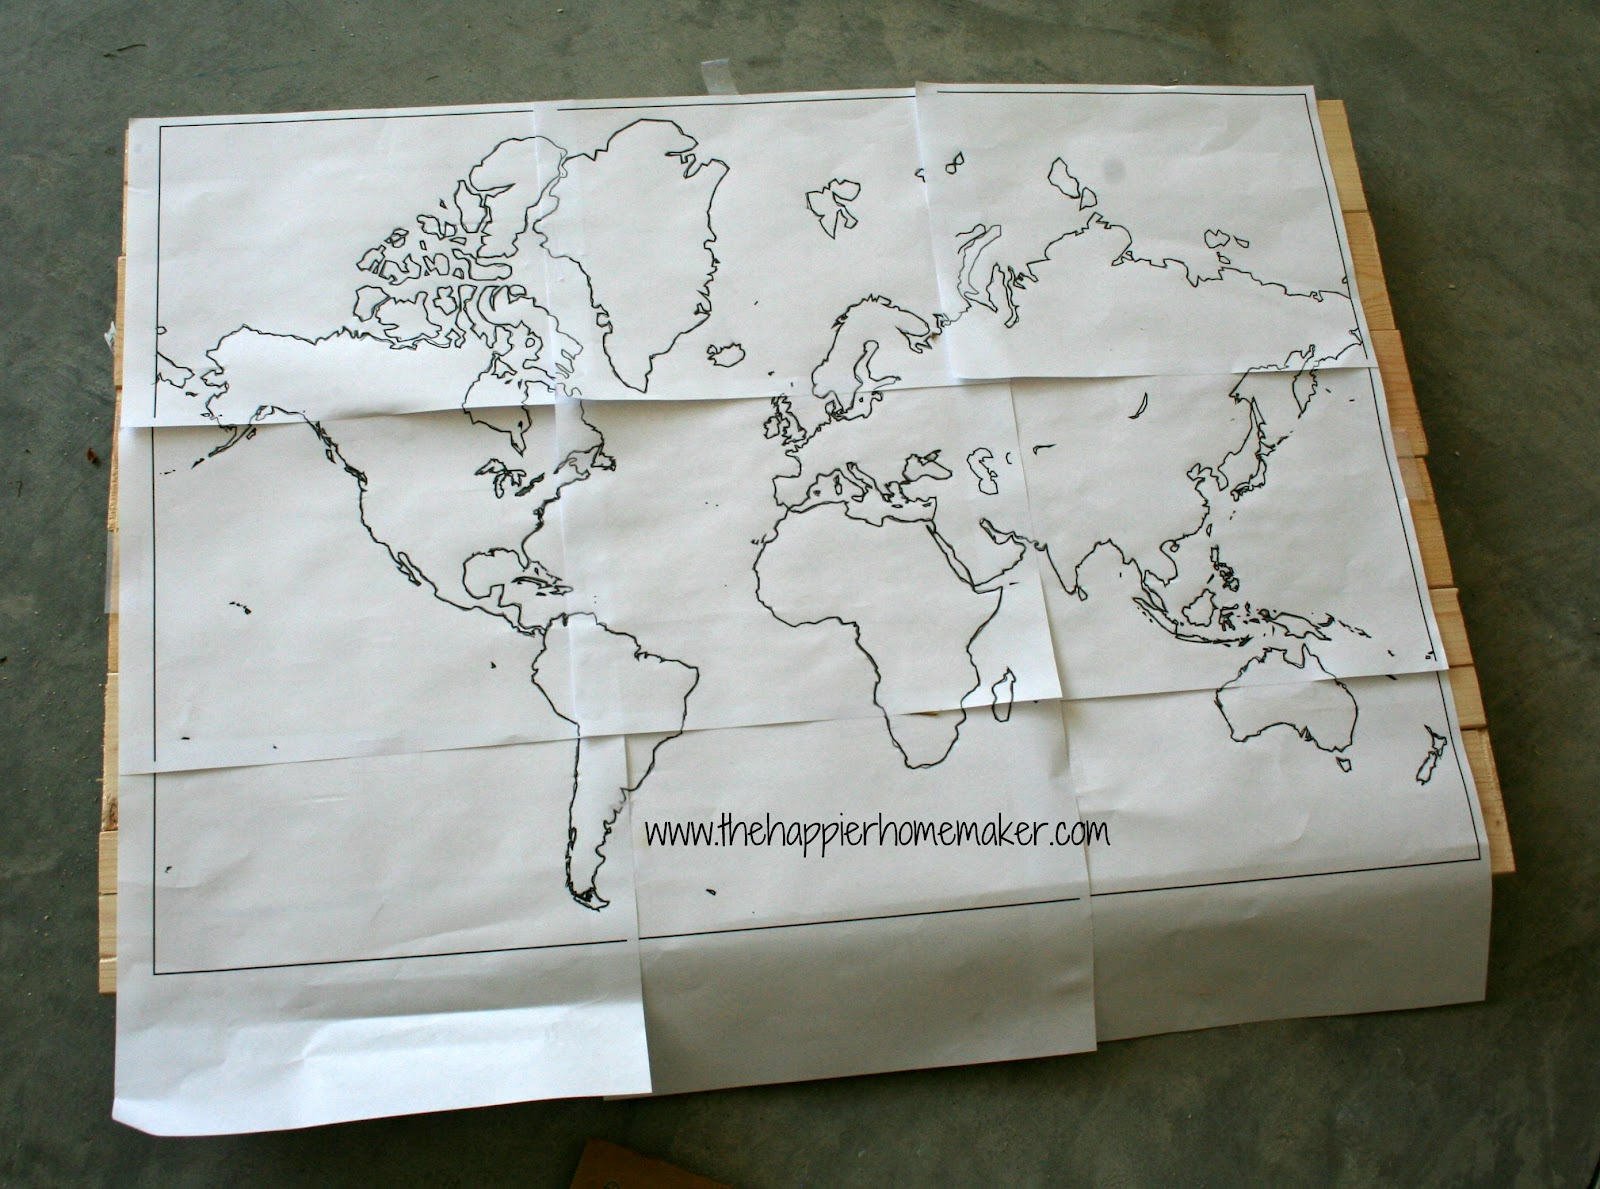 Diy wooden world map art the happier homemaker diy wooden world map art gumiabroncs Image collections